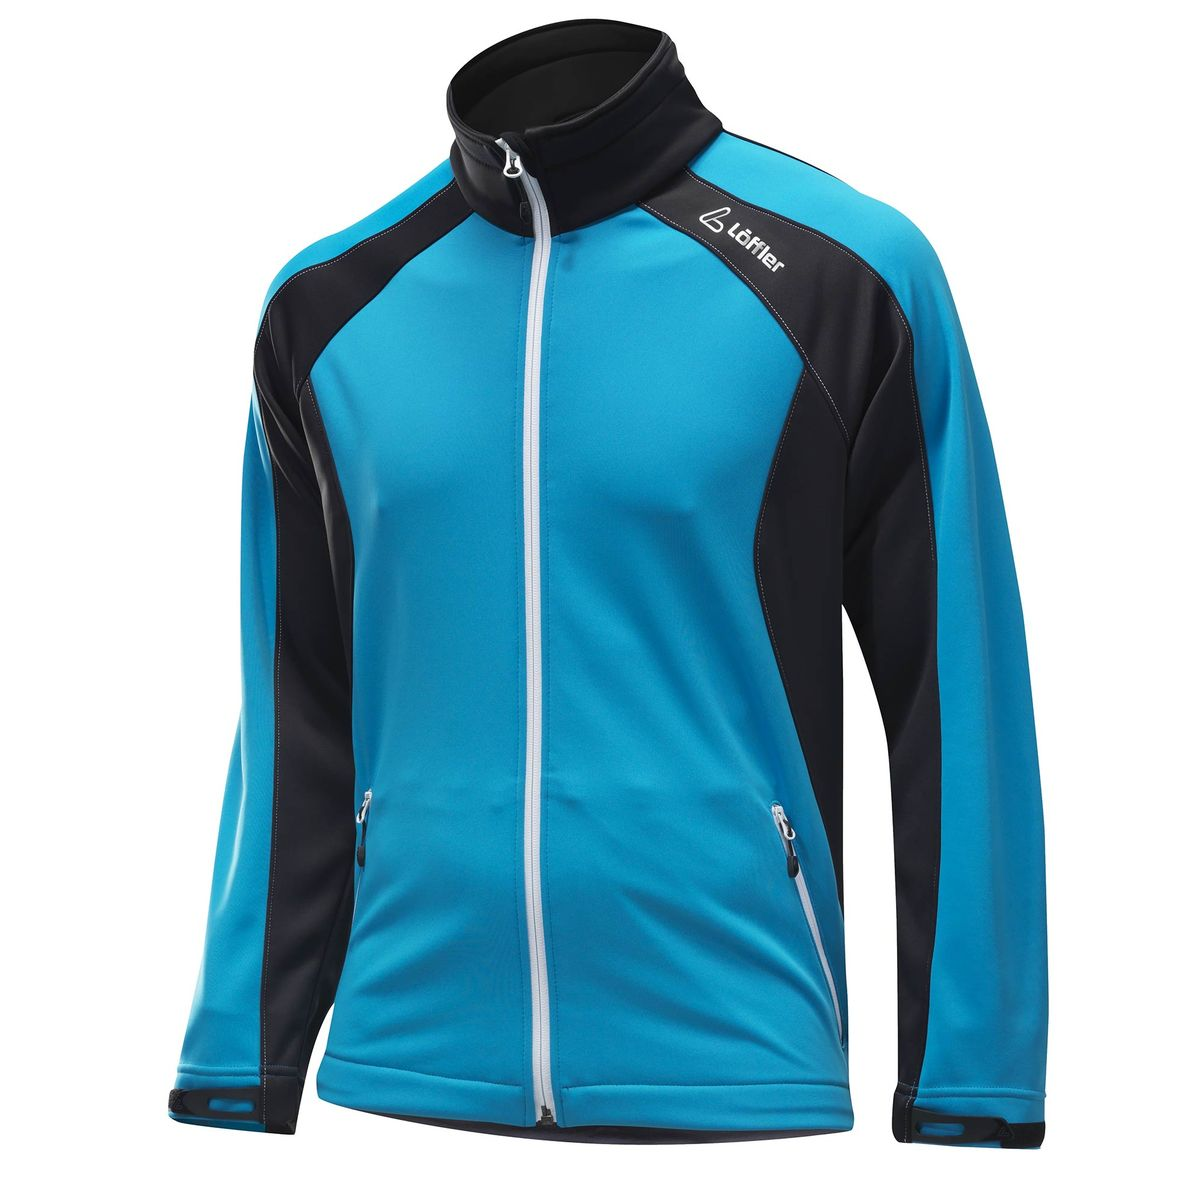 WS Softshell Warm Teamline softshell jacket